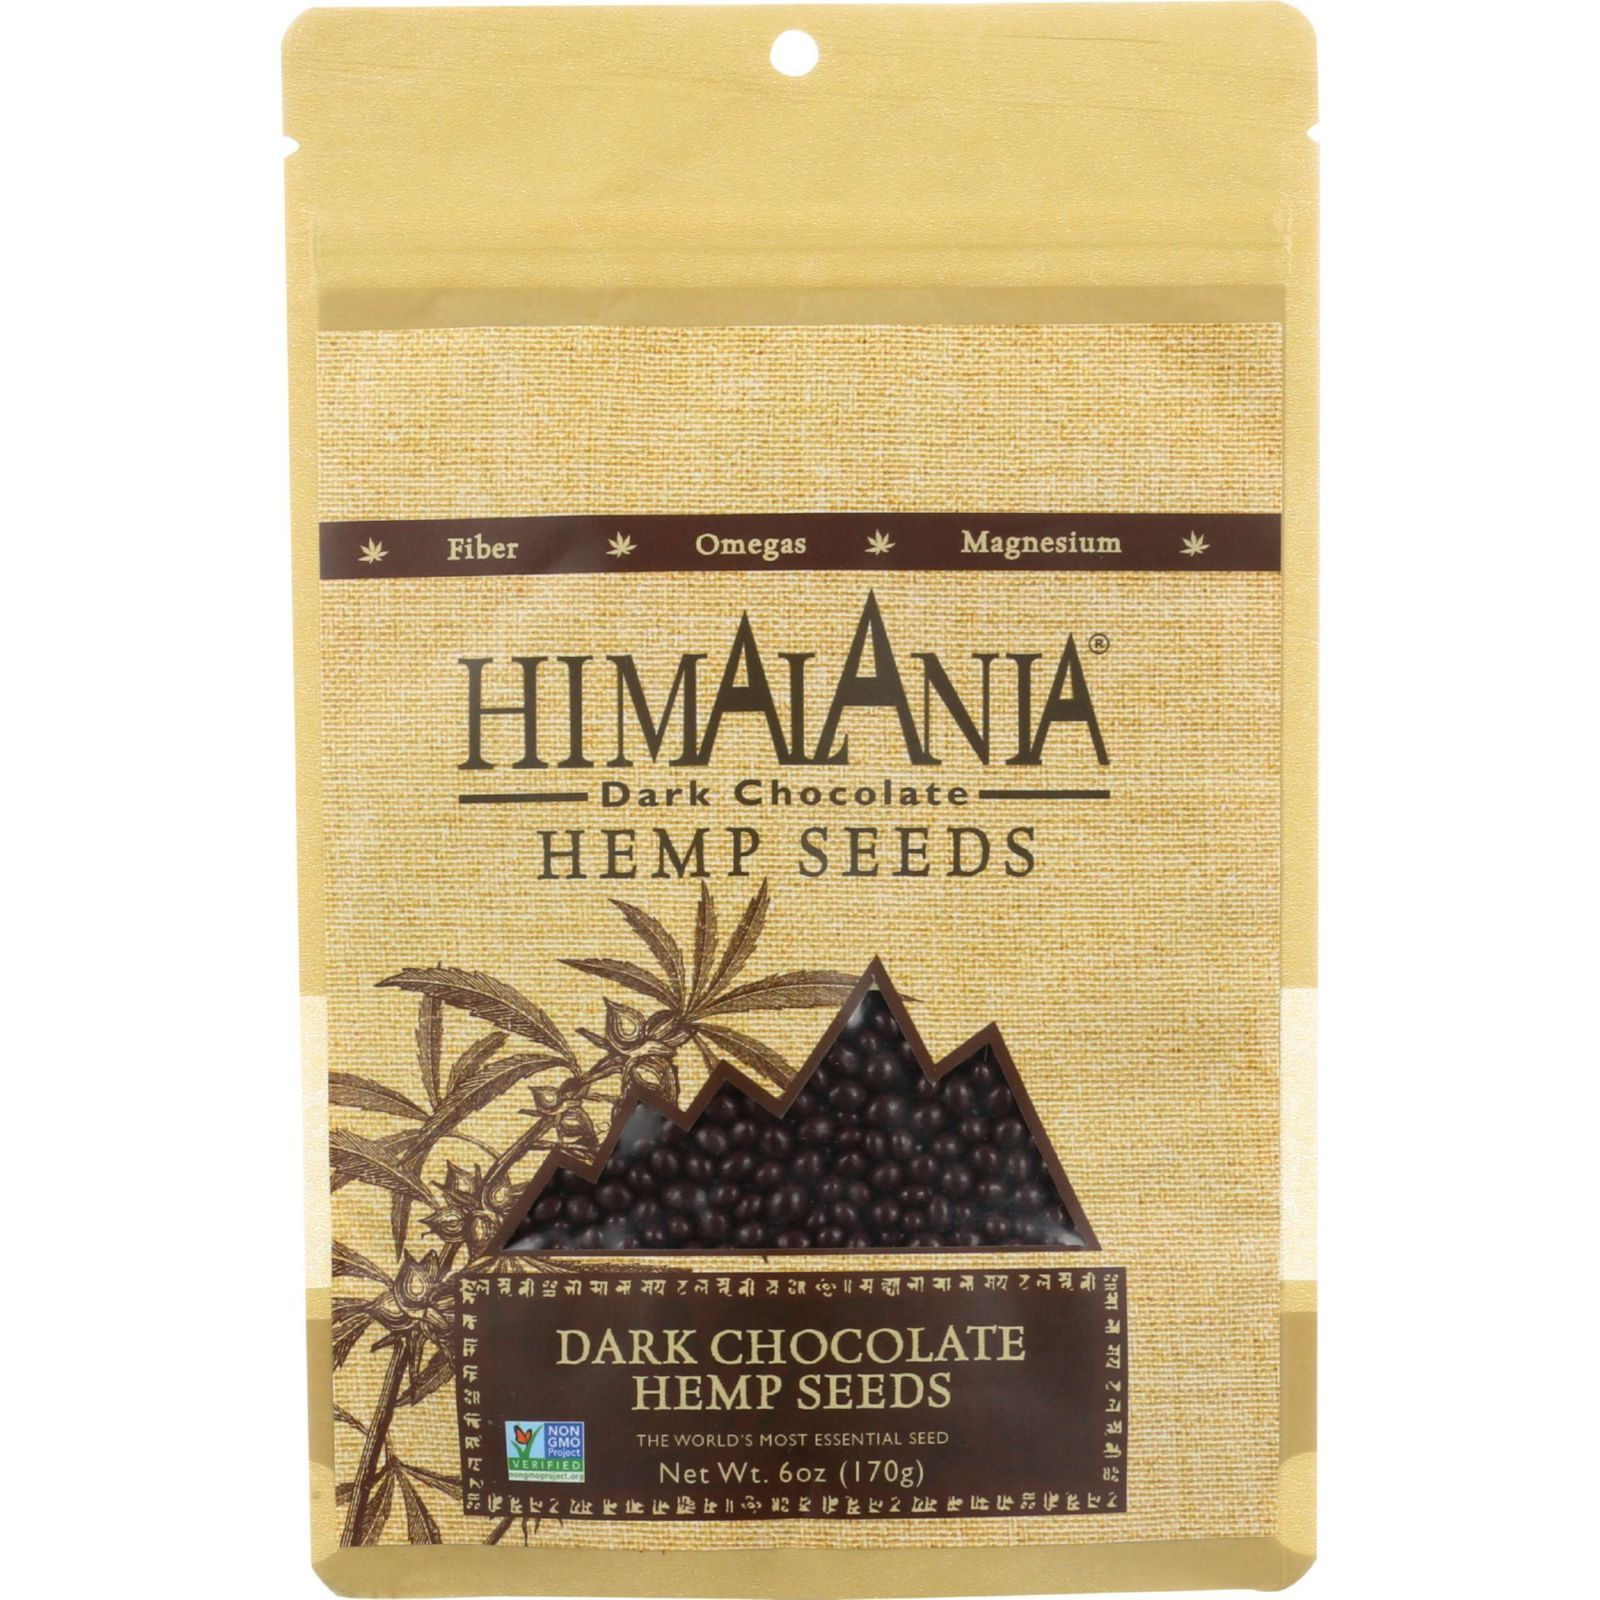 Himalania Hemp Seeds -Dark Chocolate - Case of 12 - 6 oz